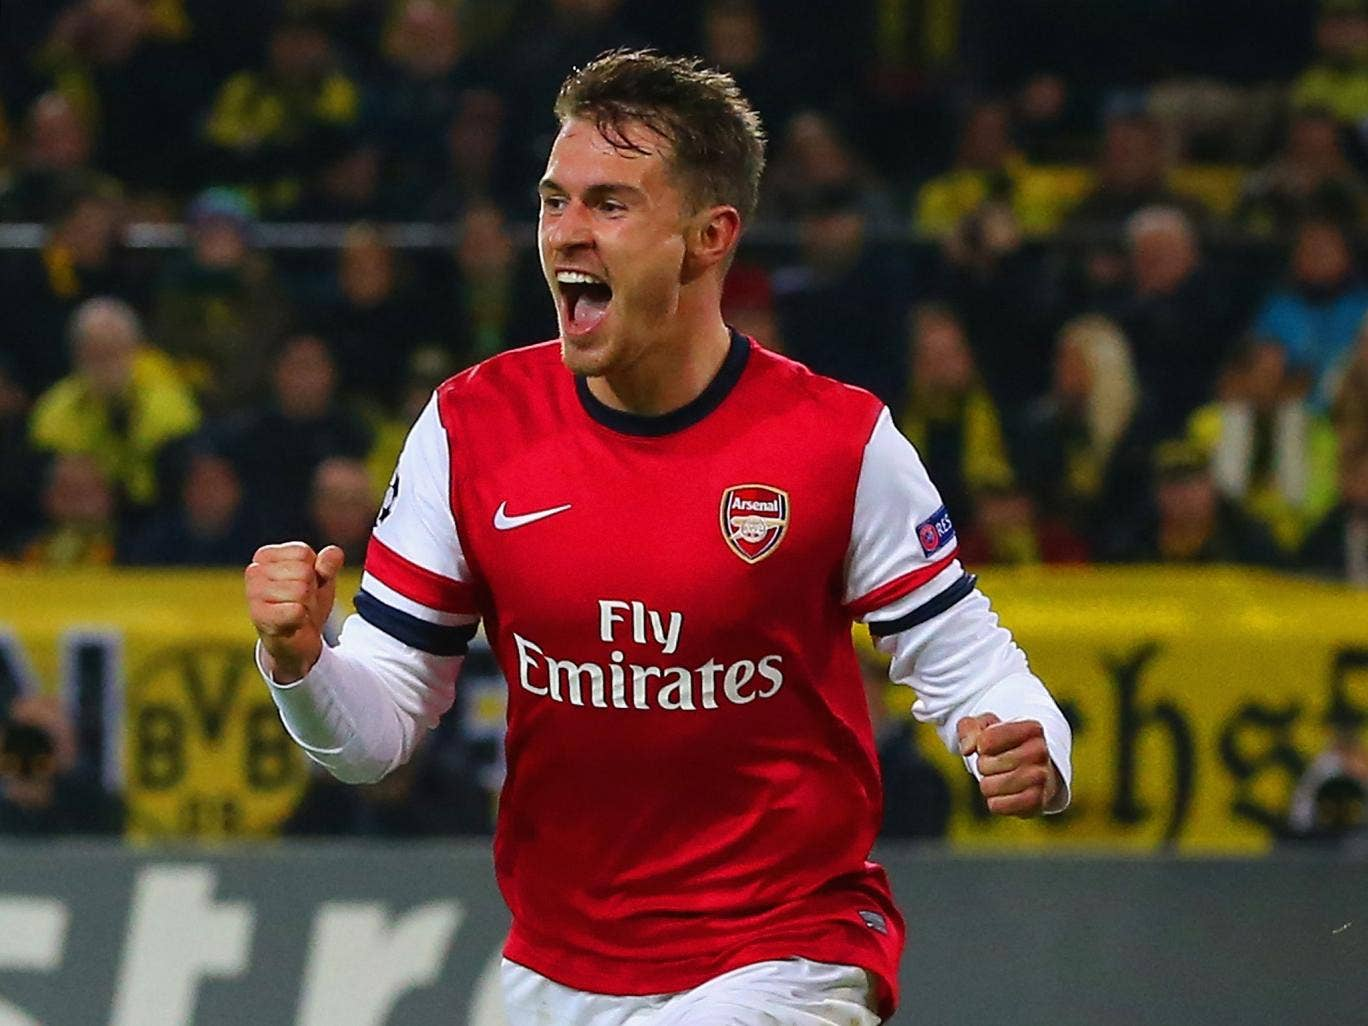 Arsenal midfielder Aaron Ramsey has claimed the Gunners have nothing to fear ahead of their trip to Manchester United